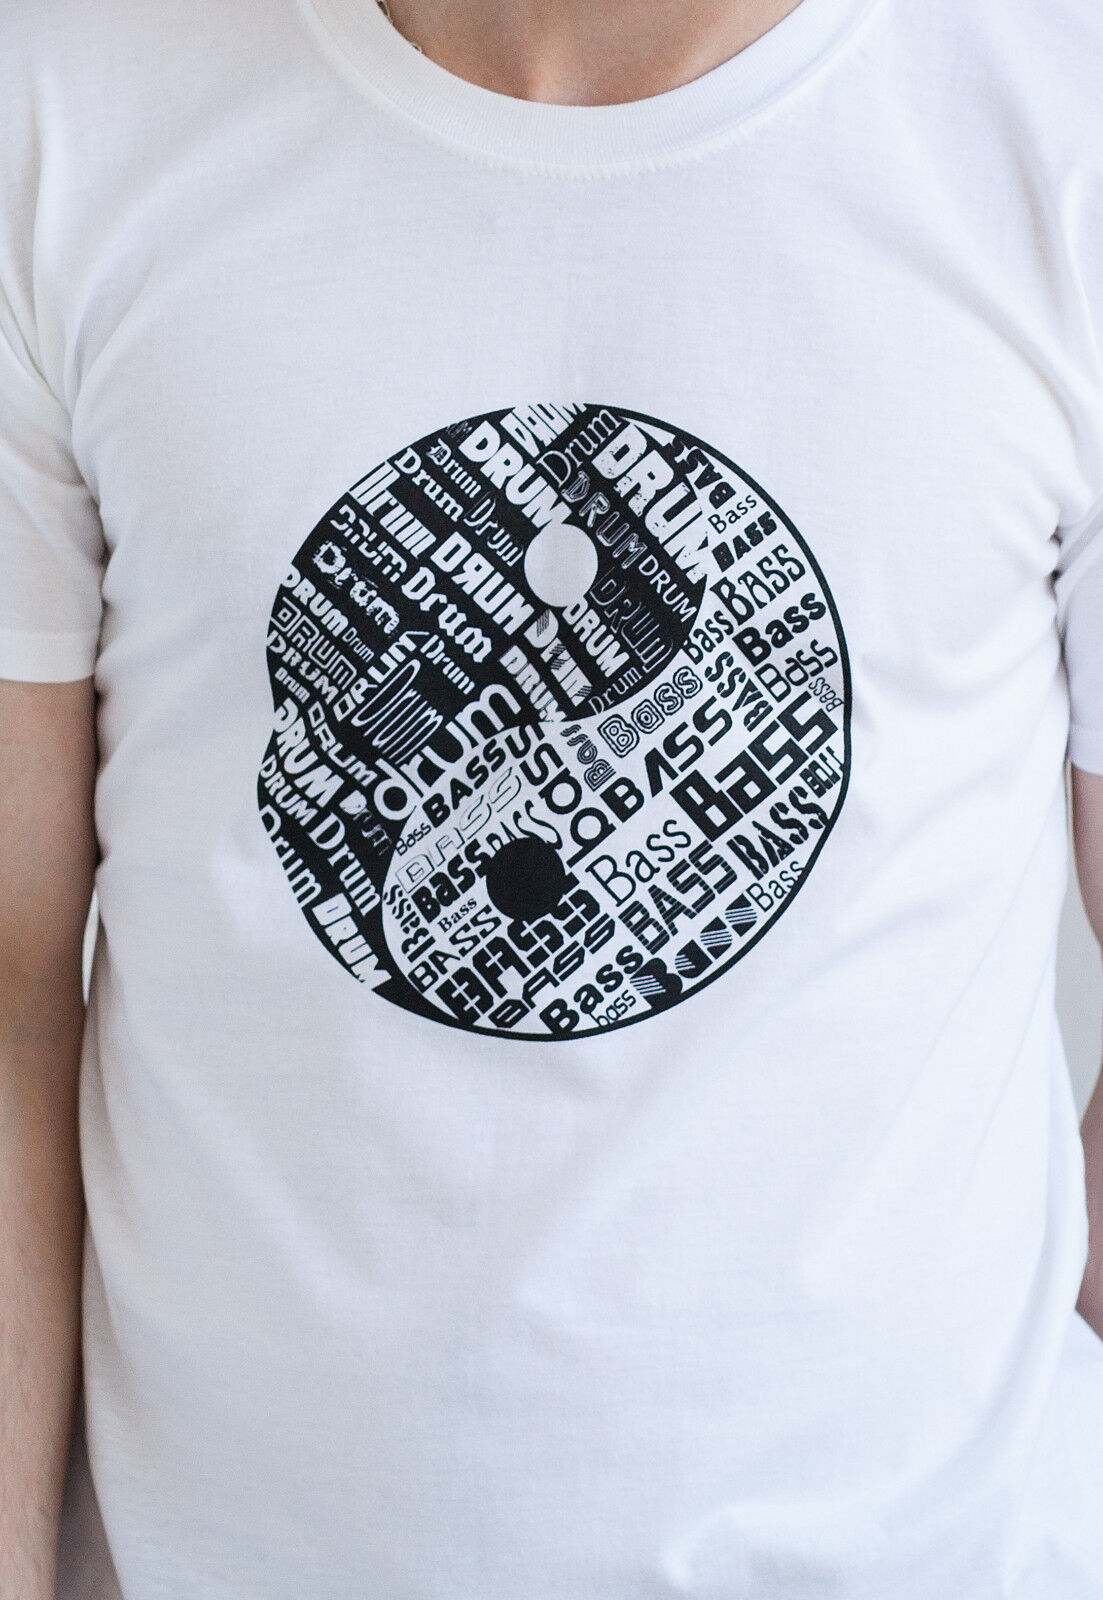 Drum and Bass T Shirt n & Yin Yang DJ Music Synth DnB EDM Junglist Tee Men Women